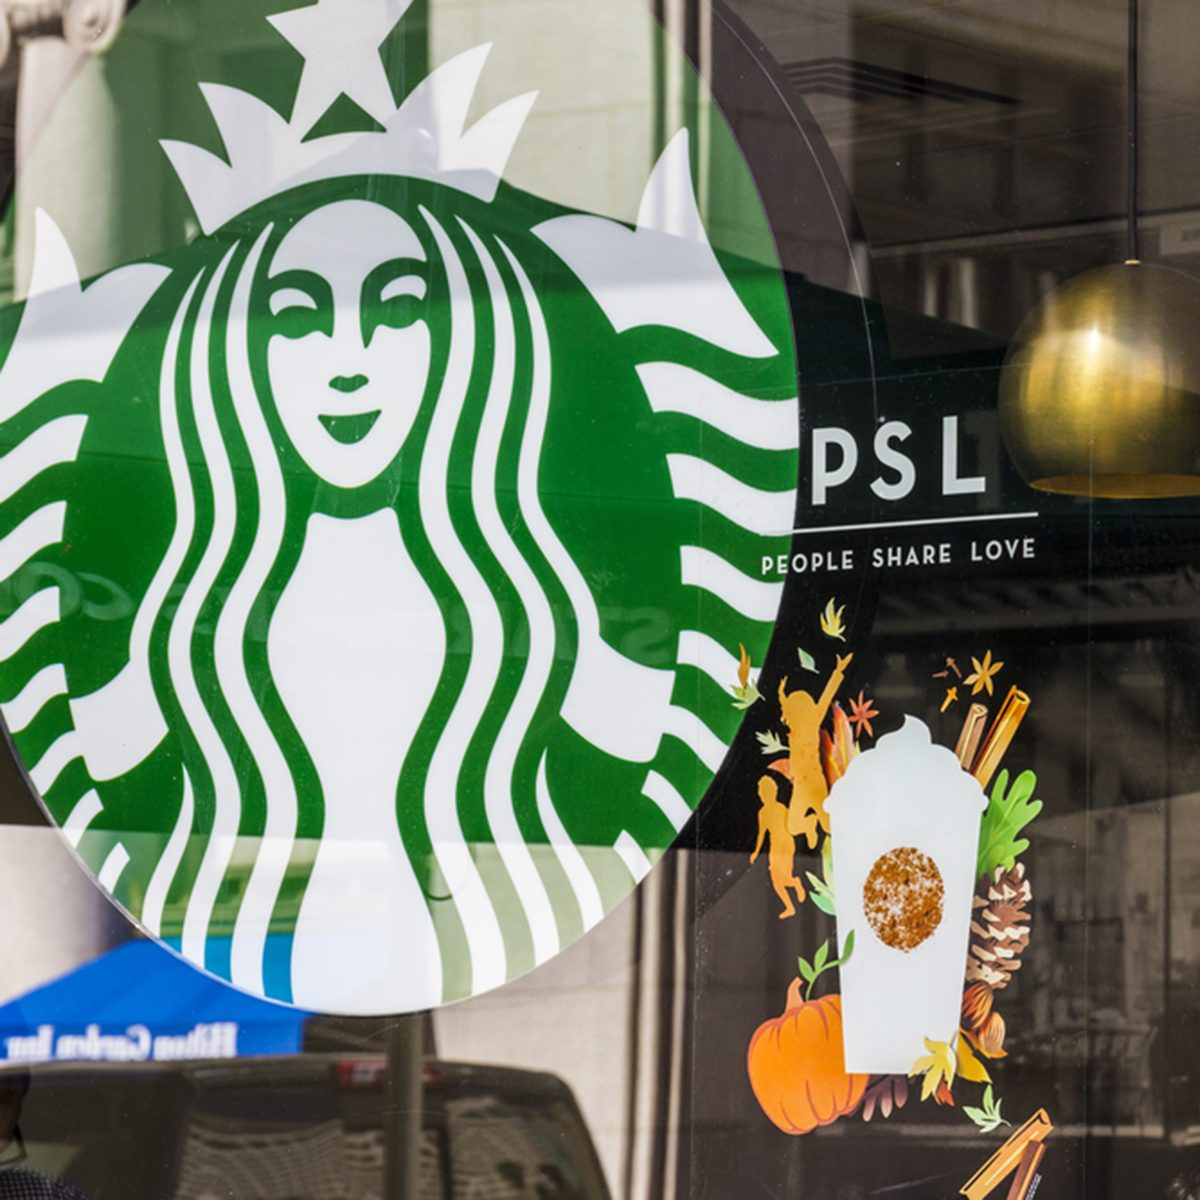 Indianapolis - Circa September 2016: Starbucks Retail Coffee Store. Starbucks is Serving Pumpkin Spice Lattes VI; Shutterstock ID 482264938